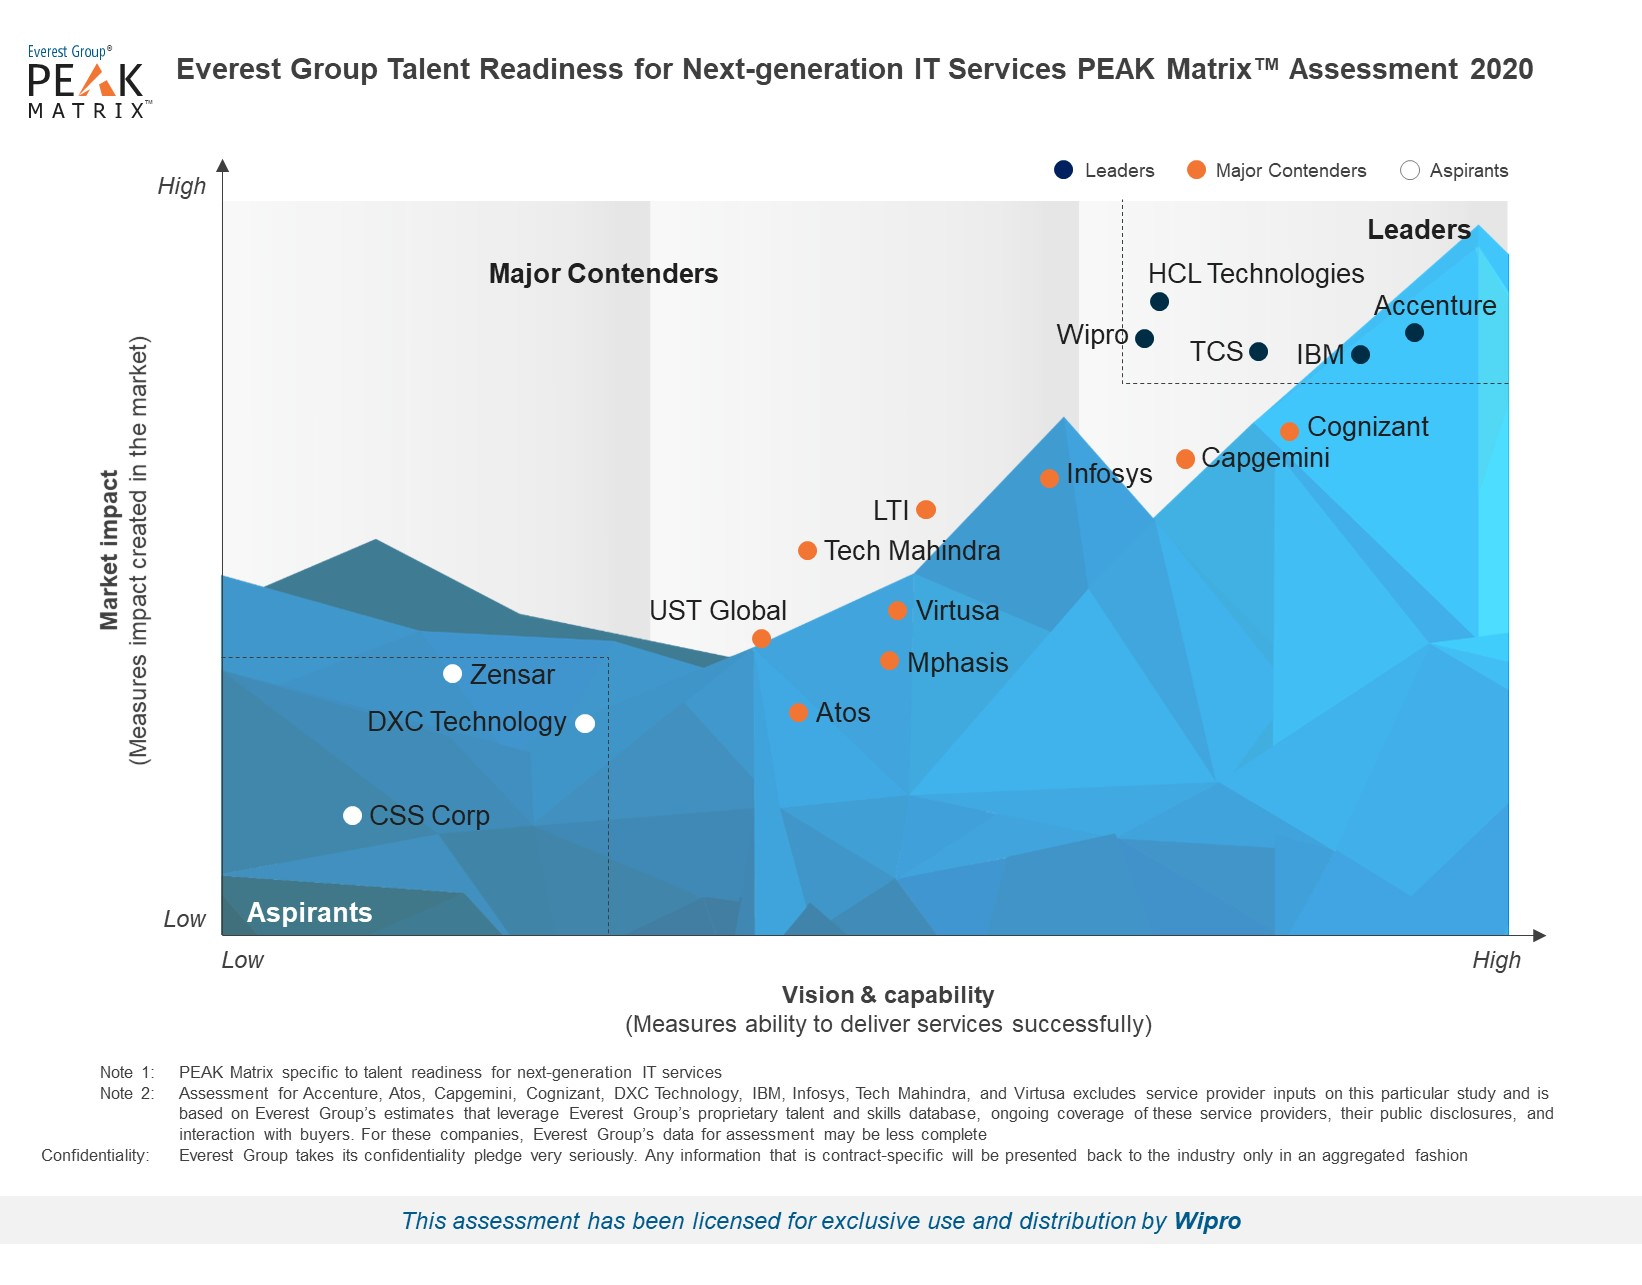 Wipro positioned as a Leader in Talent Readiness for Next-generation IT Services PEAK Matrix™ Assessment 2020